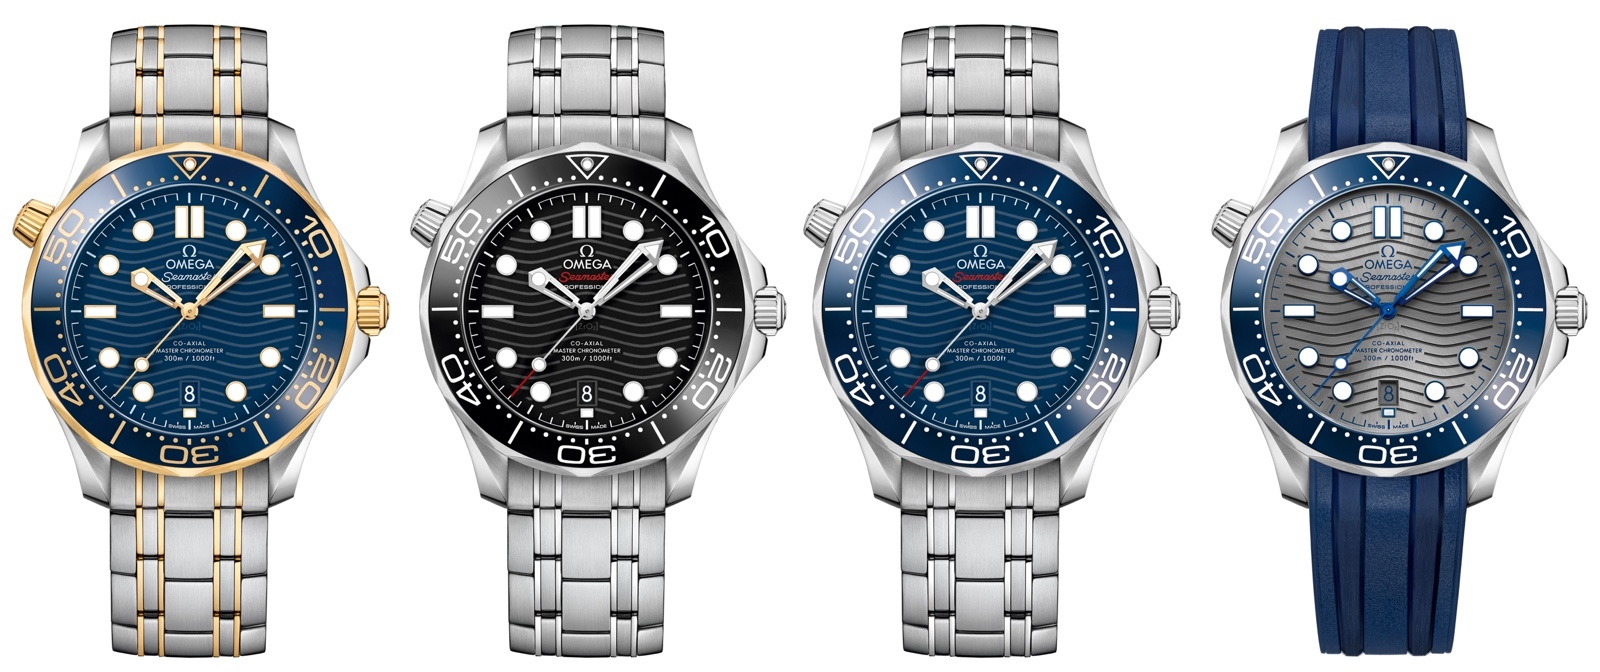 Omega Baselworld Seamaster Diver 300M referencias